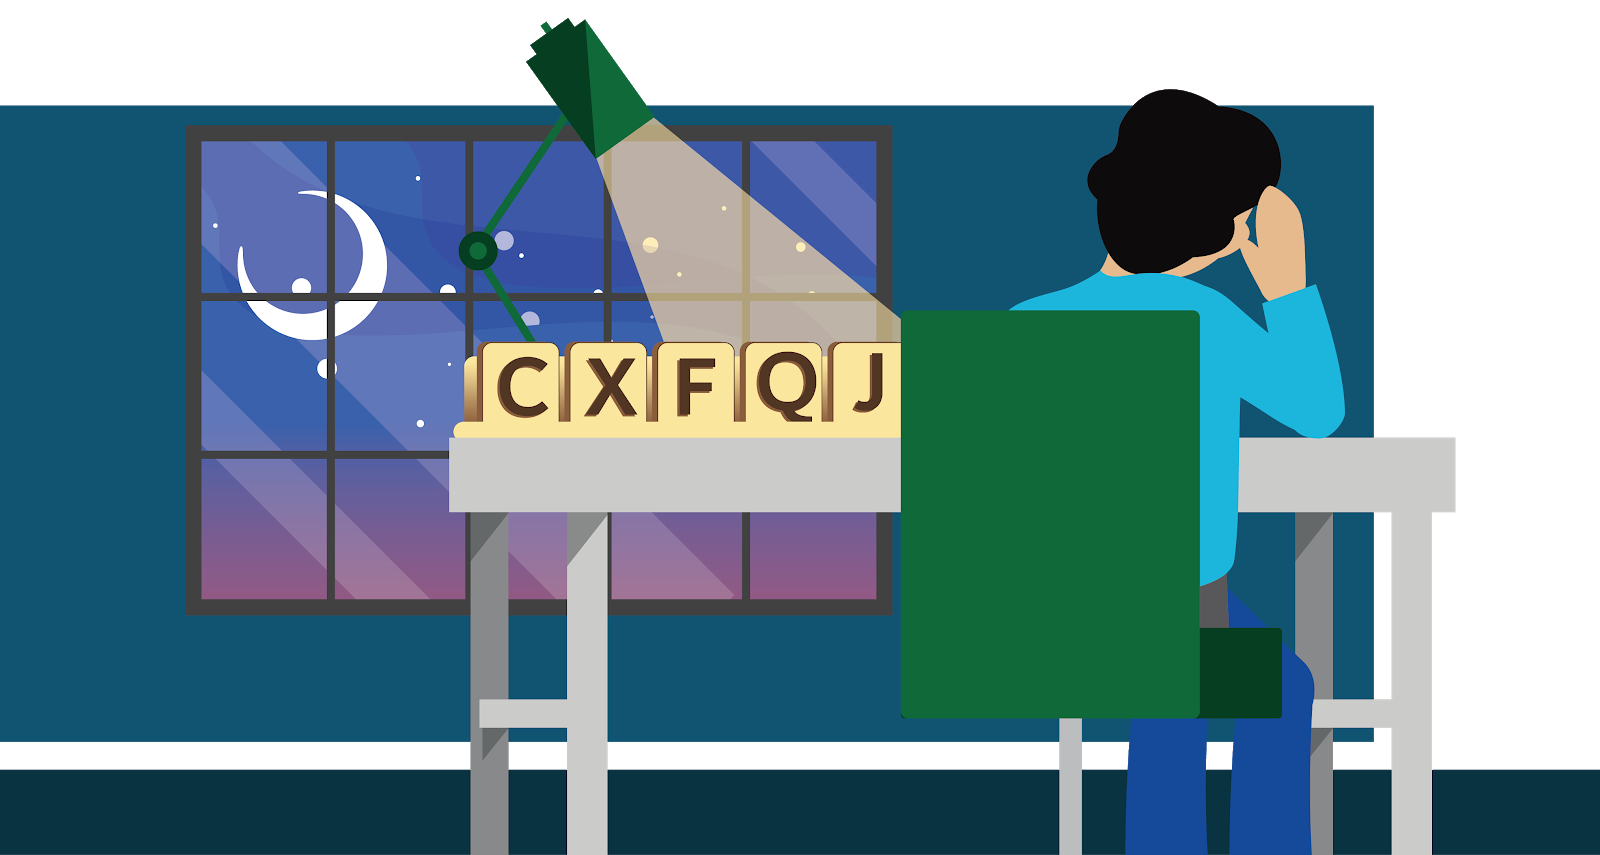 A person sitting at a desk looking at oversized scrabble letters: CXFQJ